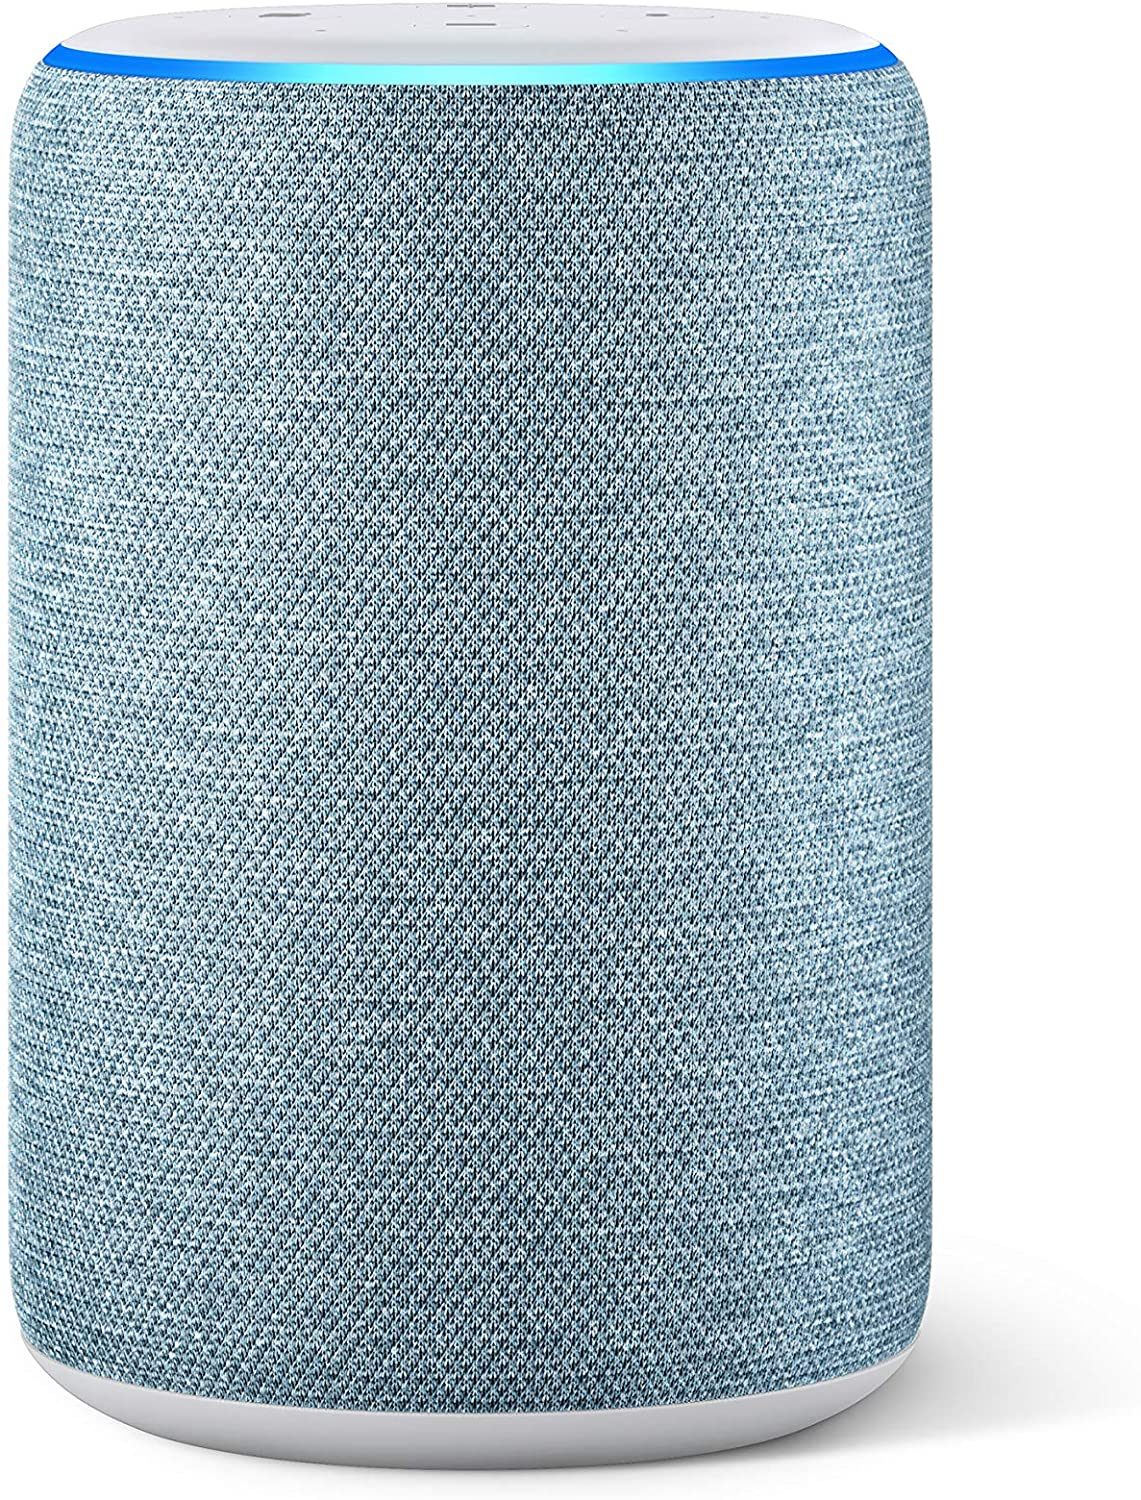 The new Echo can sense the acoustics of your room and adjust playback to suit